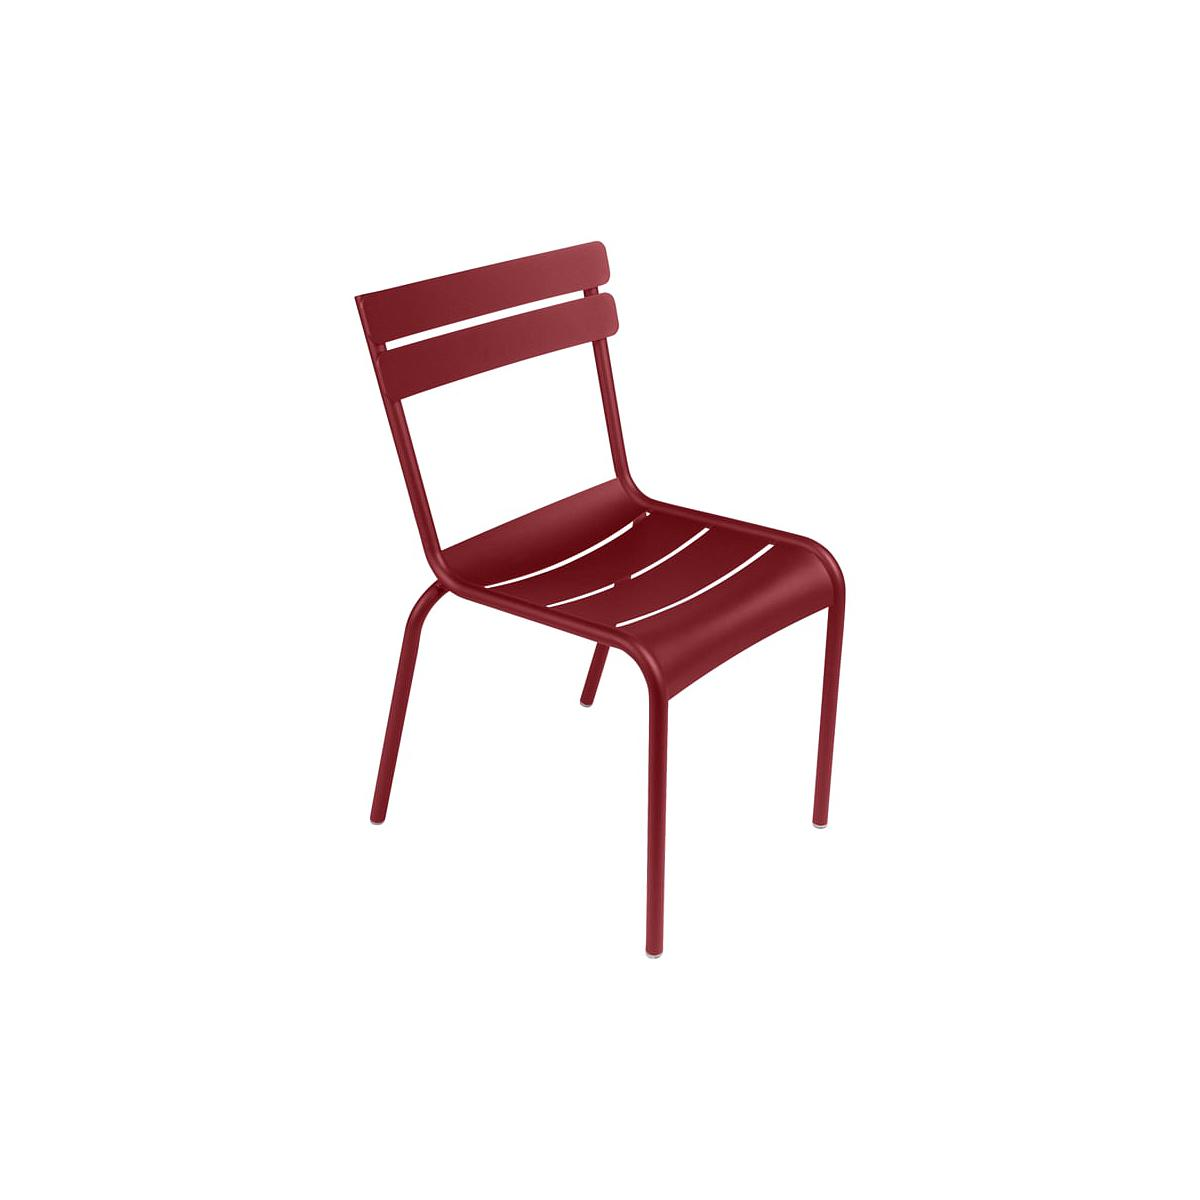 LUXEMBOURG by Fermob Chaise Rouge Piment